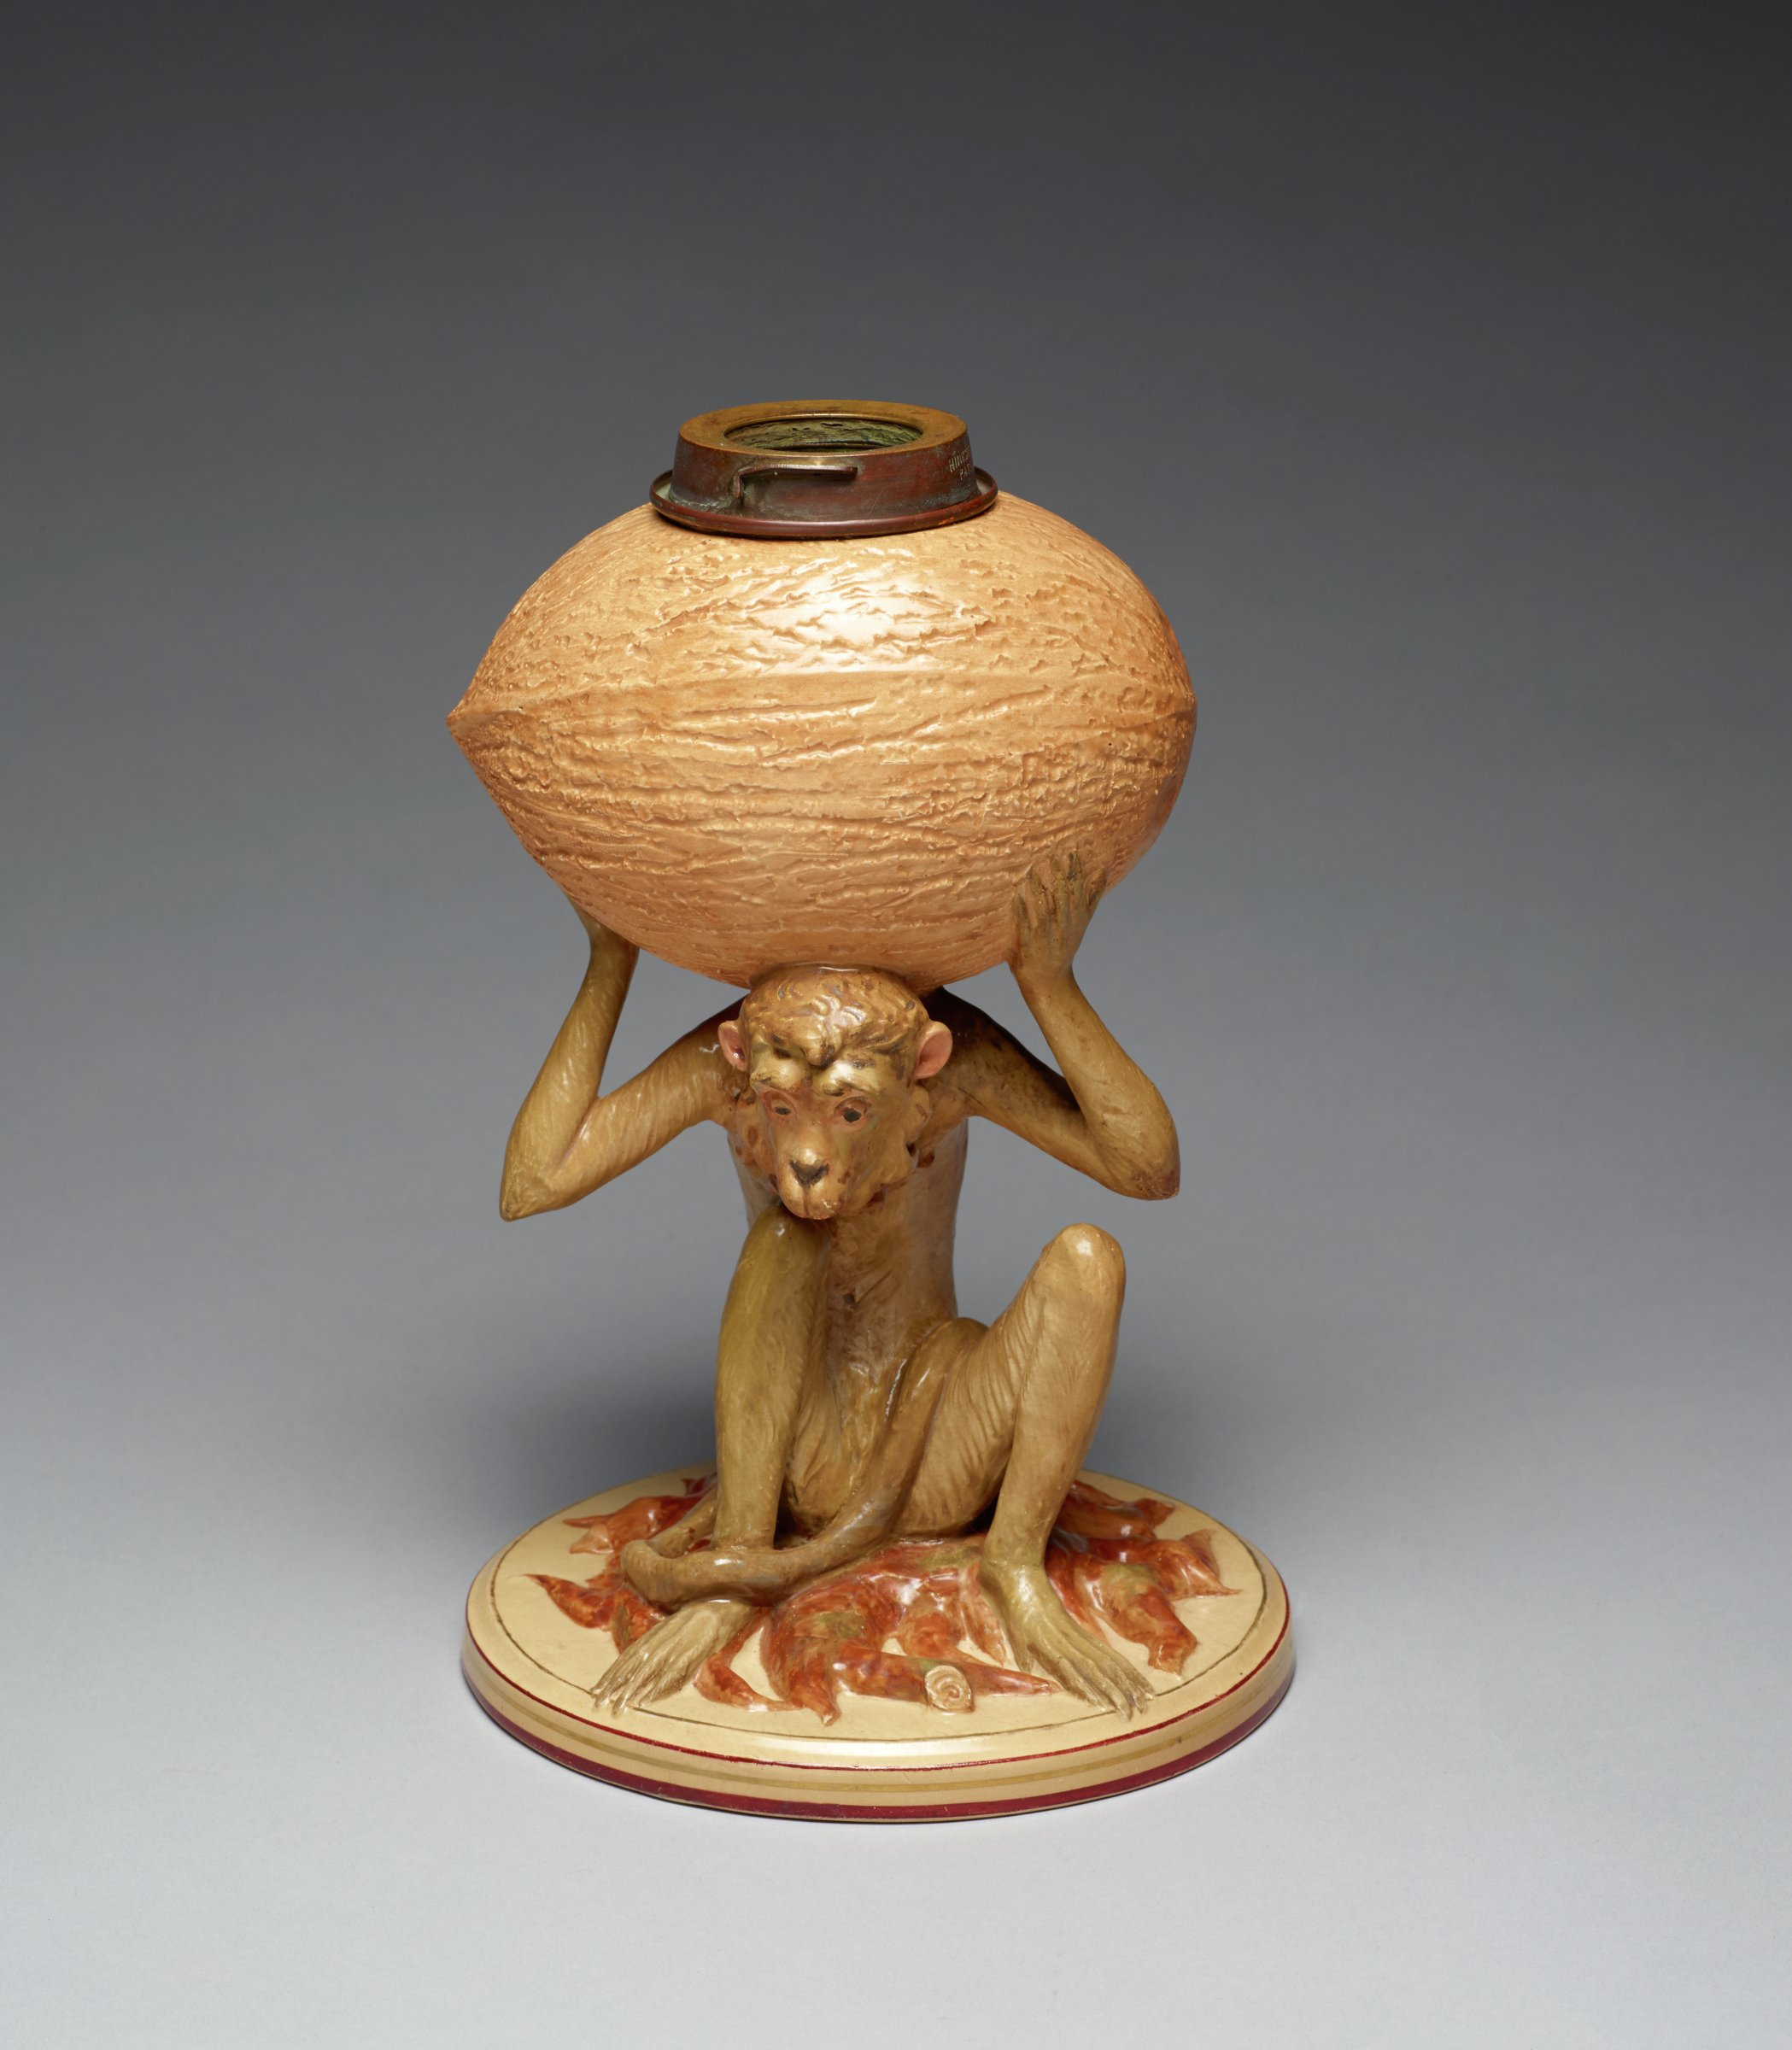 Lamp base of Majolica in the form of a brown monkey seated on a round base covered with molded leaves and twigs in shades of red, holding a large nut on his head supported by both arms, the original oil burner, chimney and shade of the lamp are now missing.